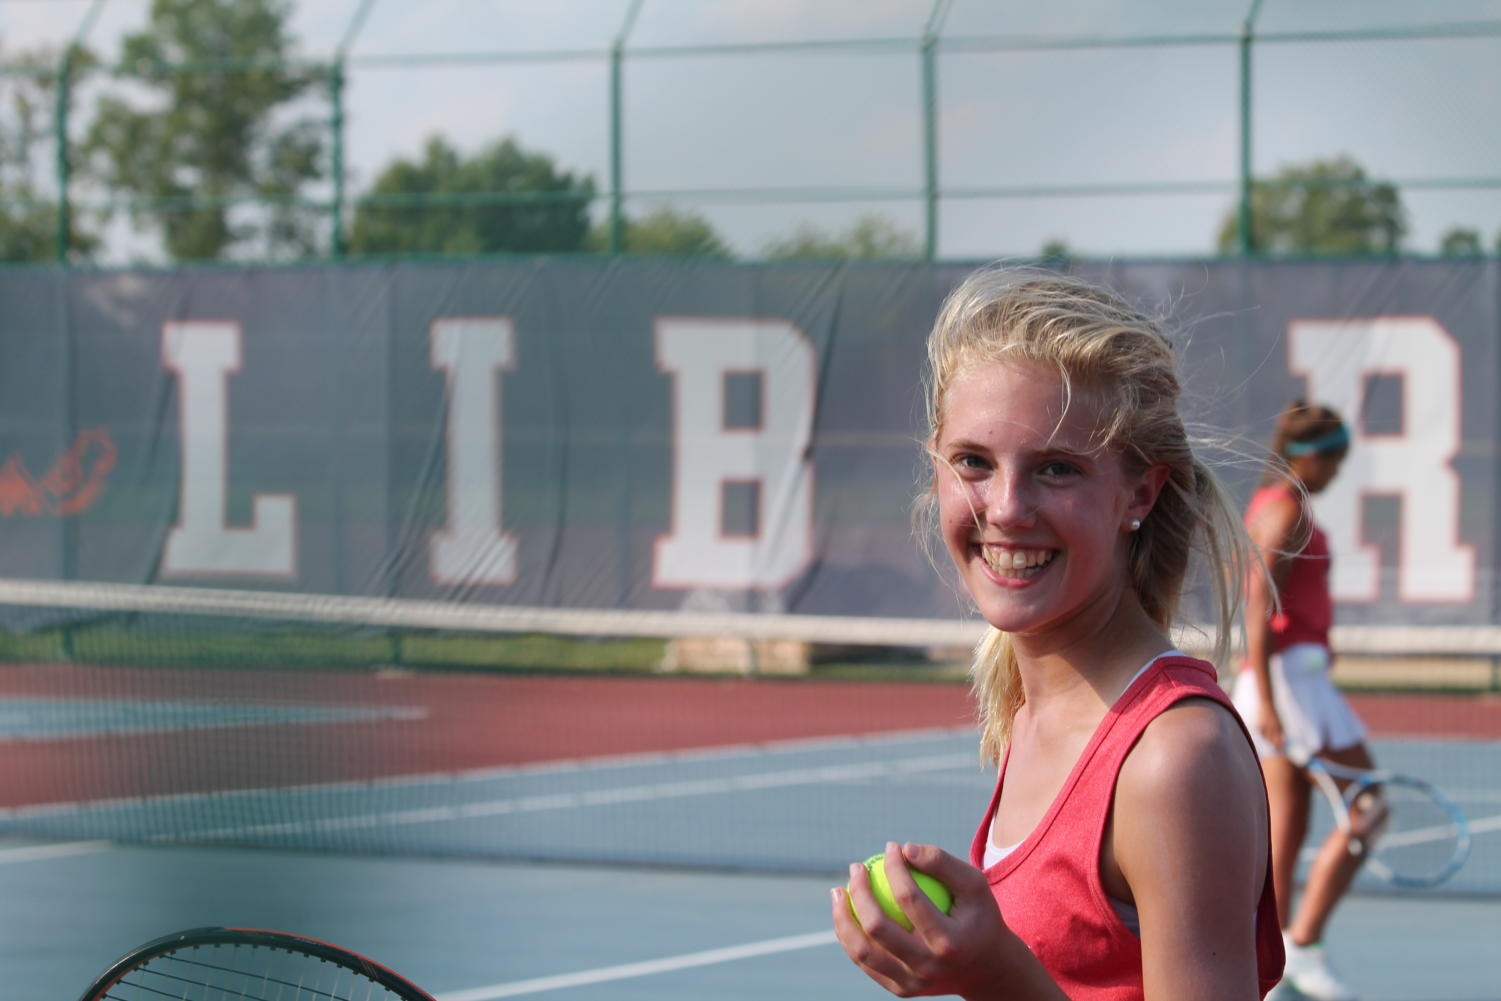 Carly Torbit prepares for her doubles match against Holt. She is a freshman on varsity tennis.